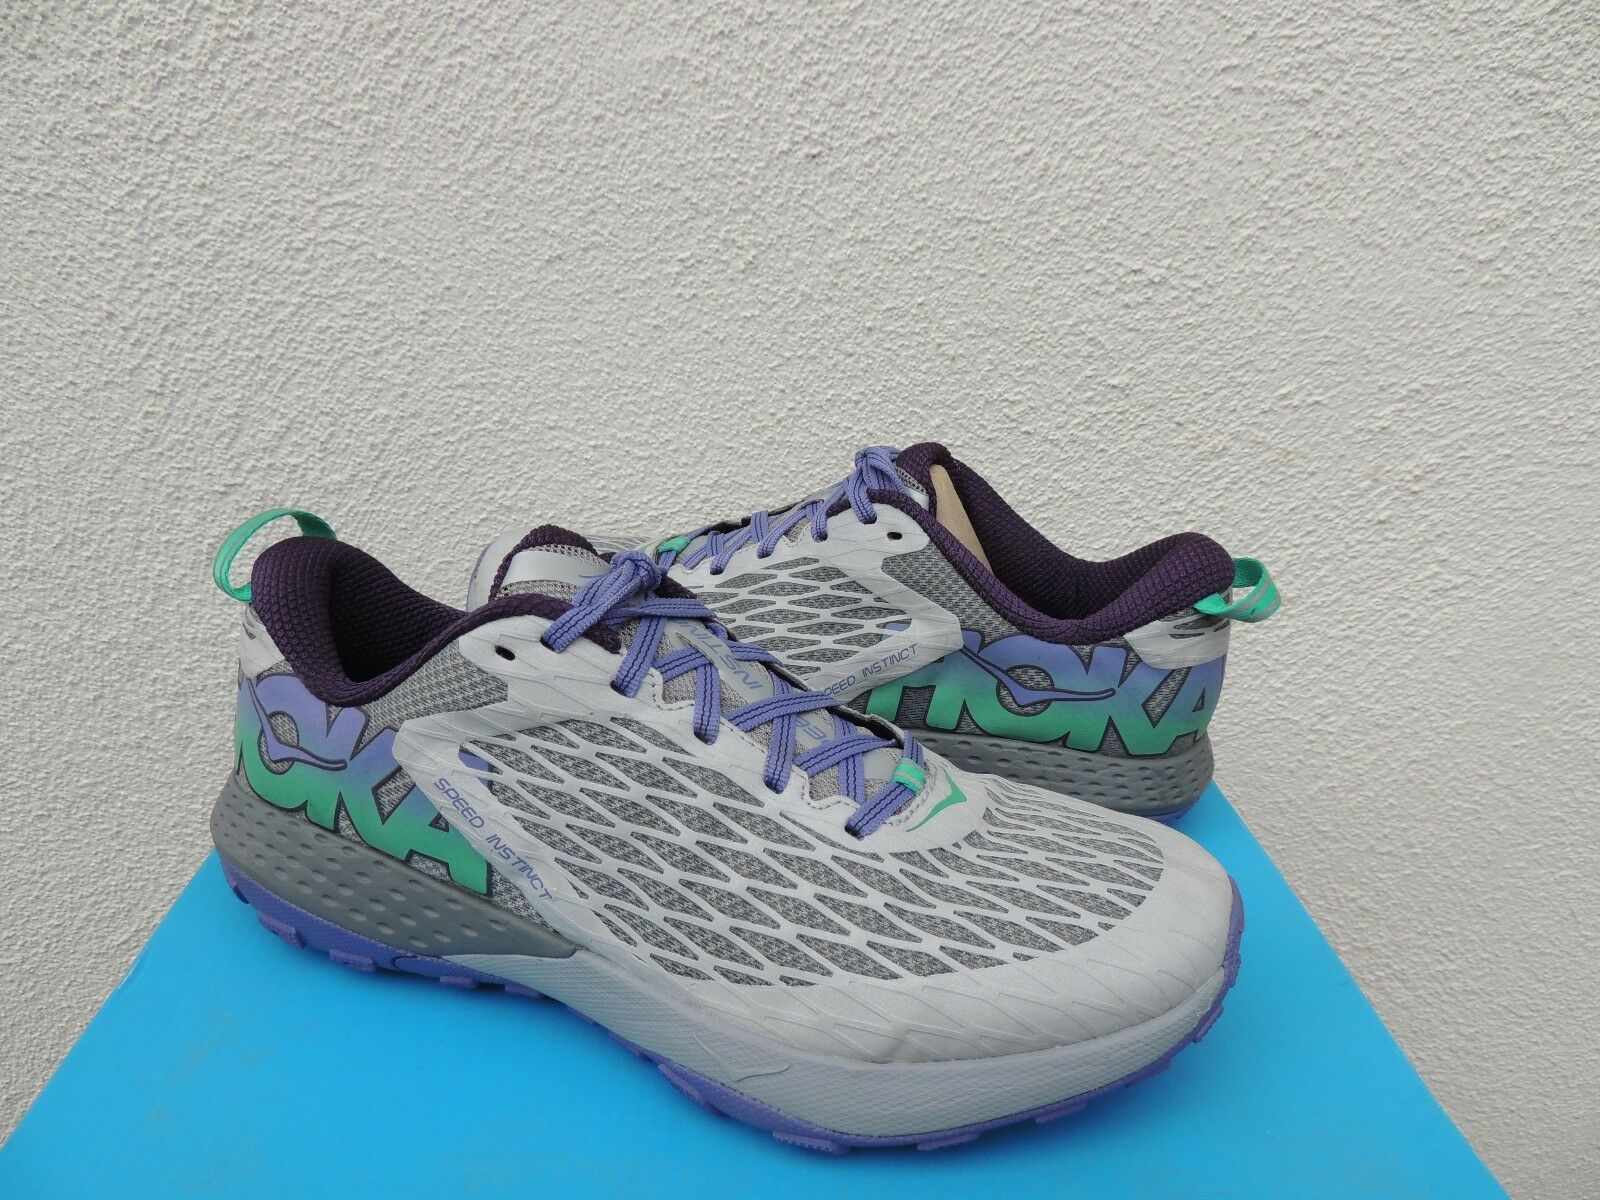 HOKA ONE ONE SPEED INSTINCT GREY  CORSICAN blueE RUNNING SHOES, US 7  38 2 3 NEW